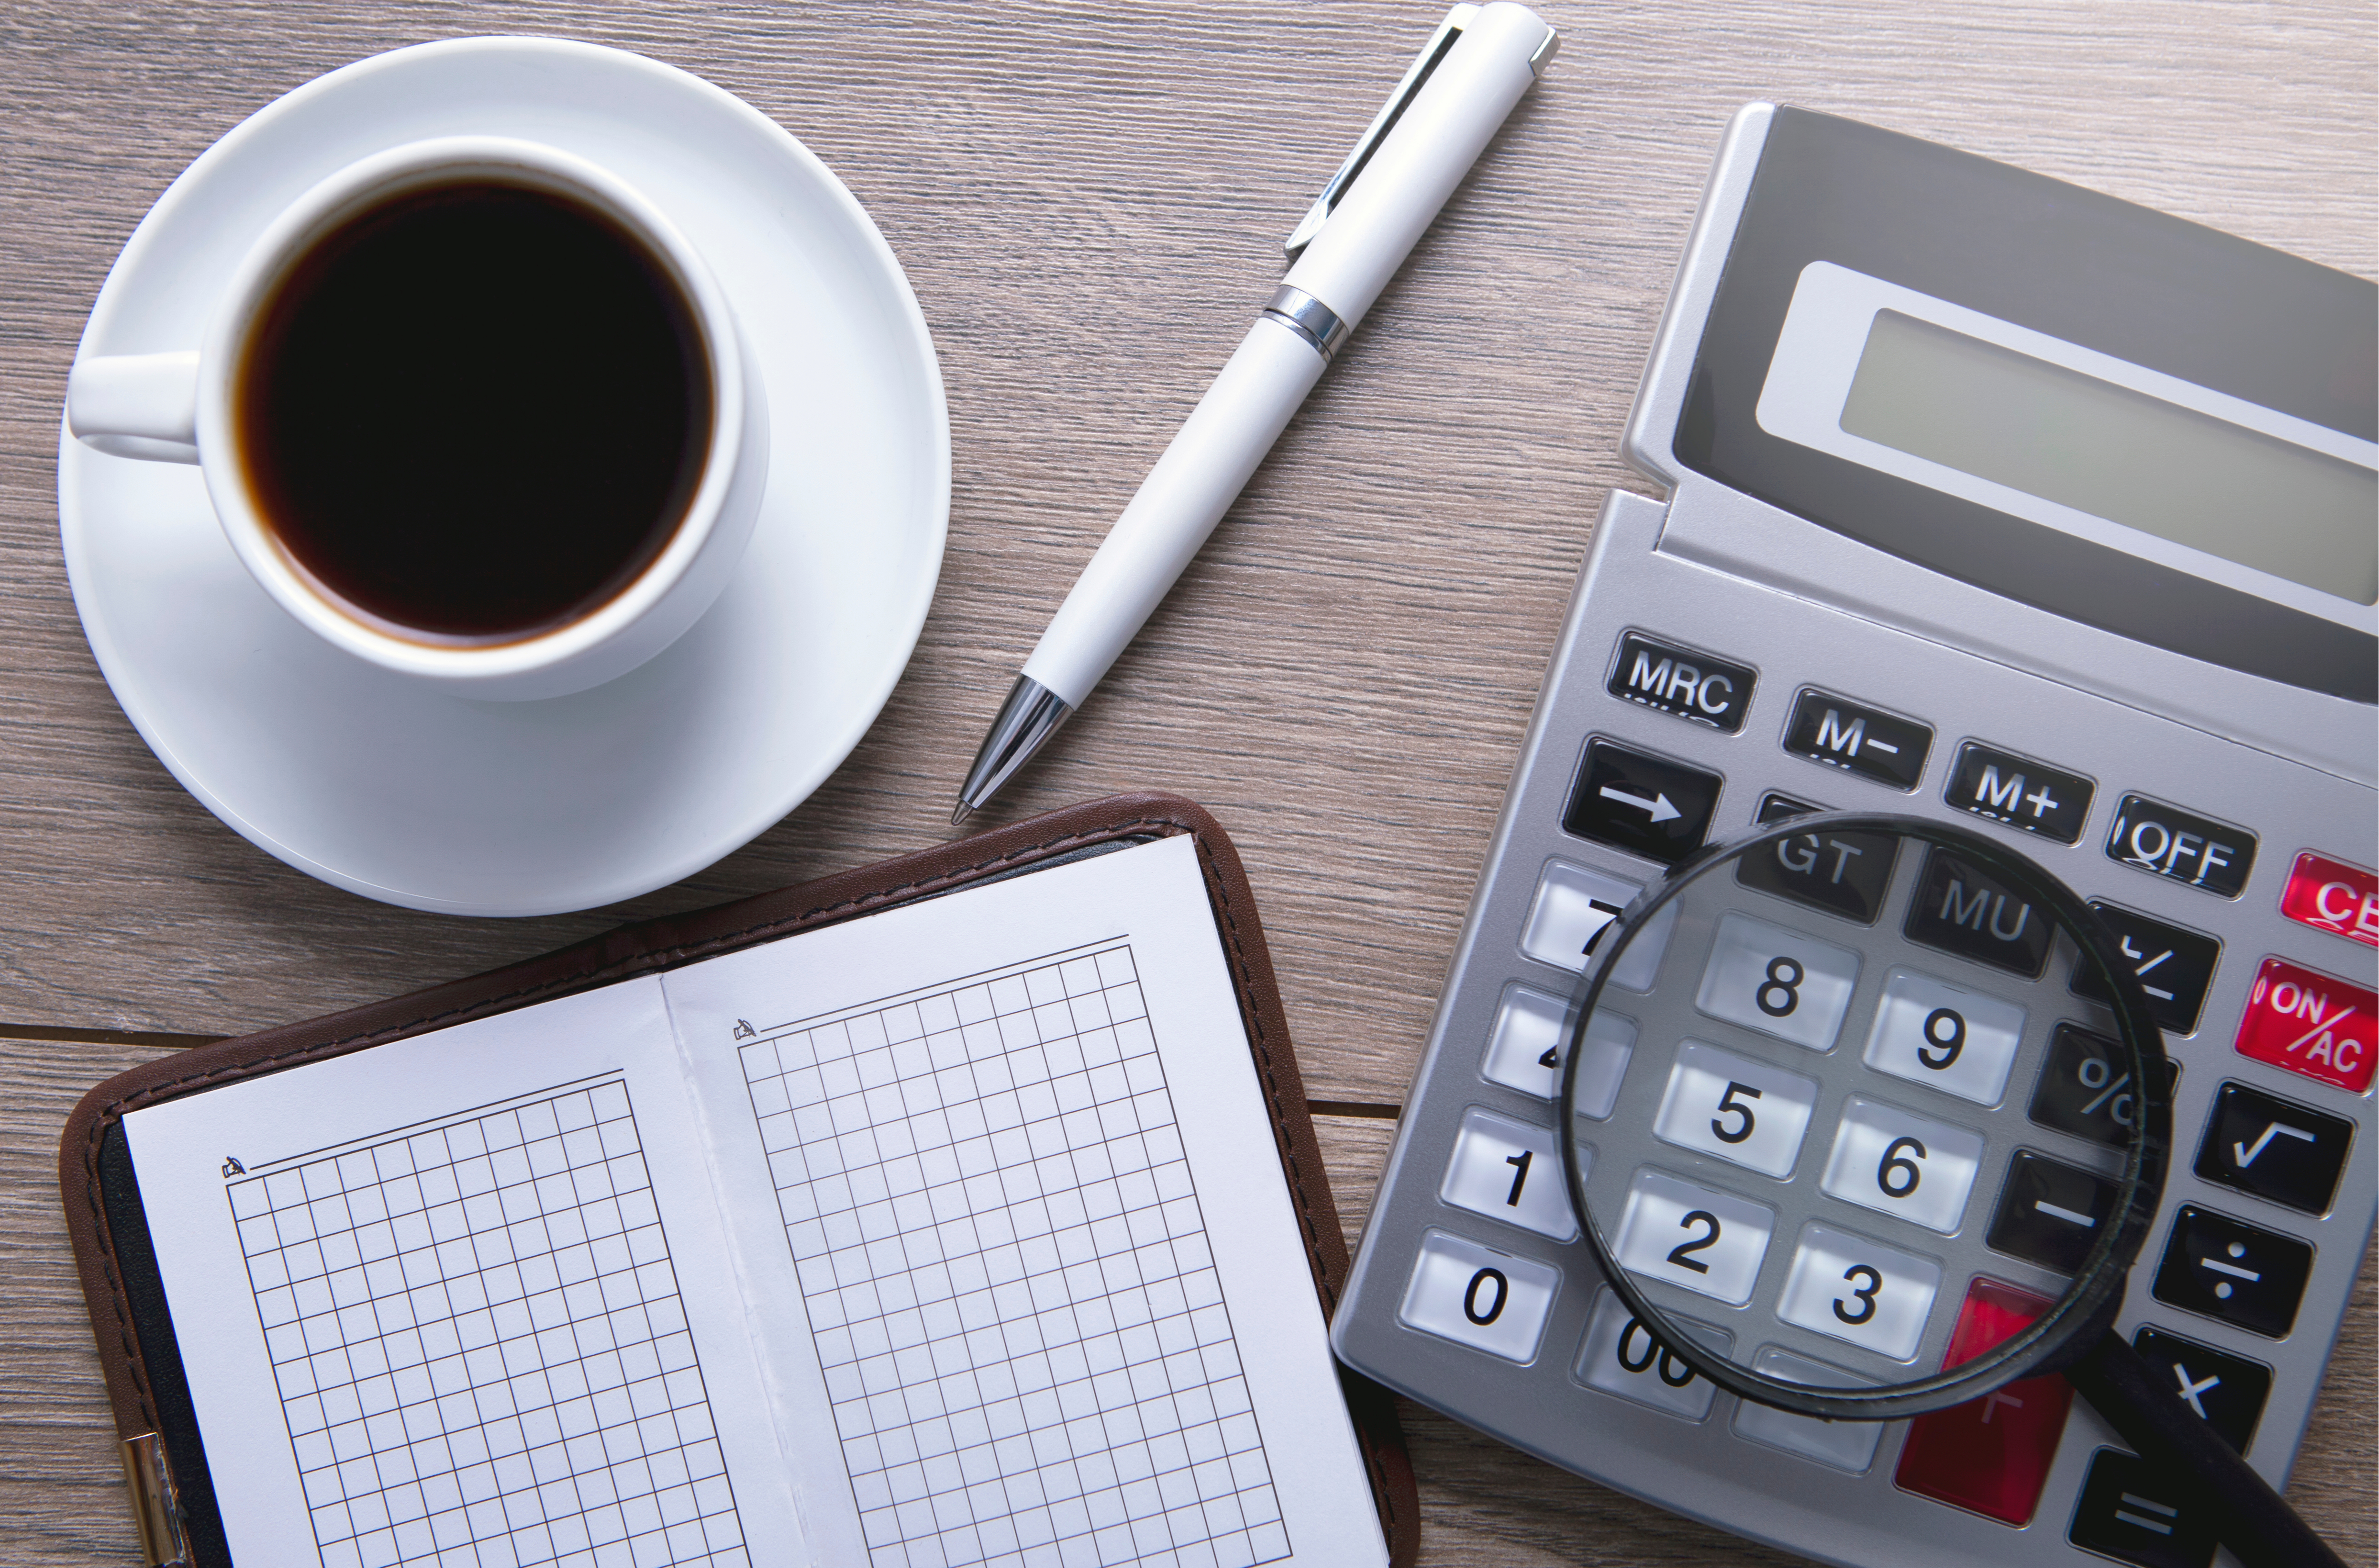 Desk Coffee Calc - NS Pricing New Featured Image 19